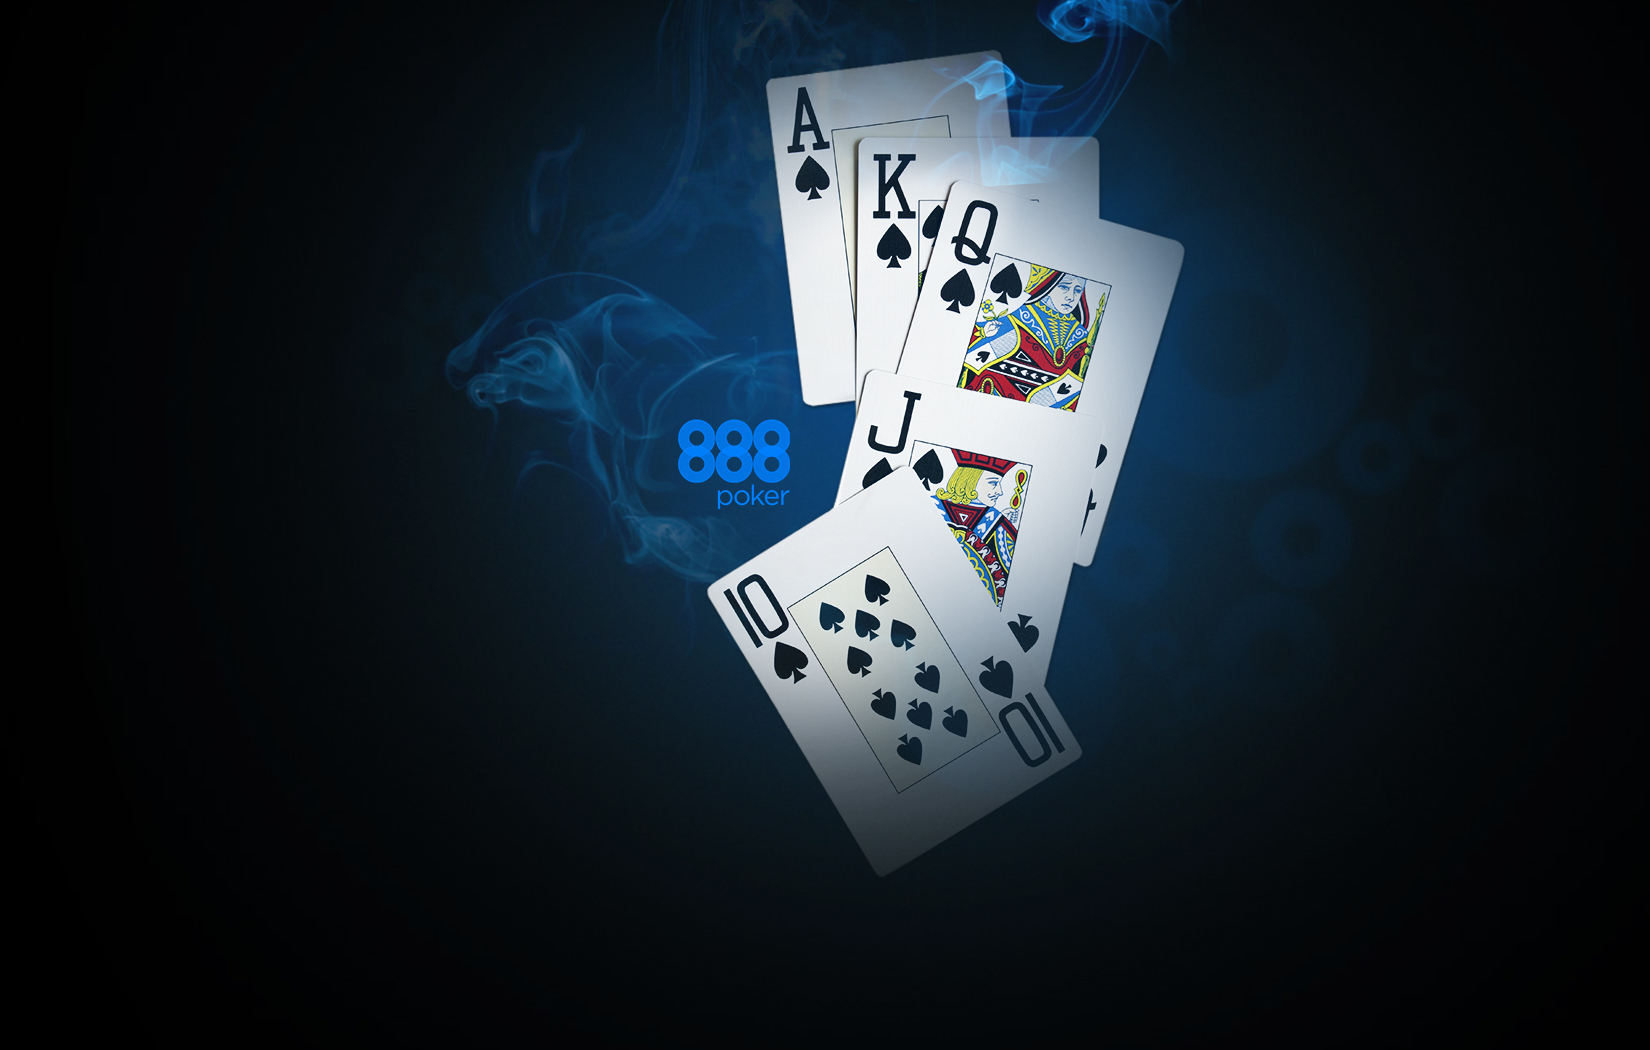 Royal vegas 888 poker Portugal-725595